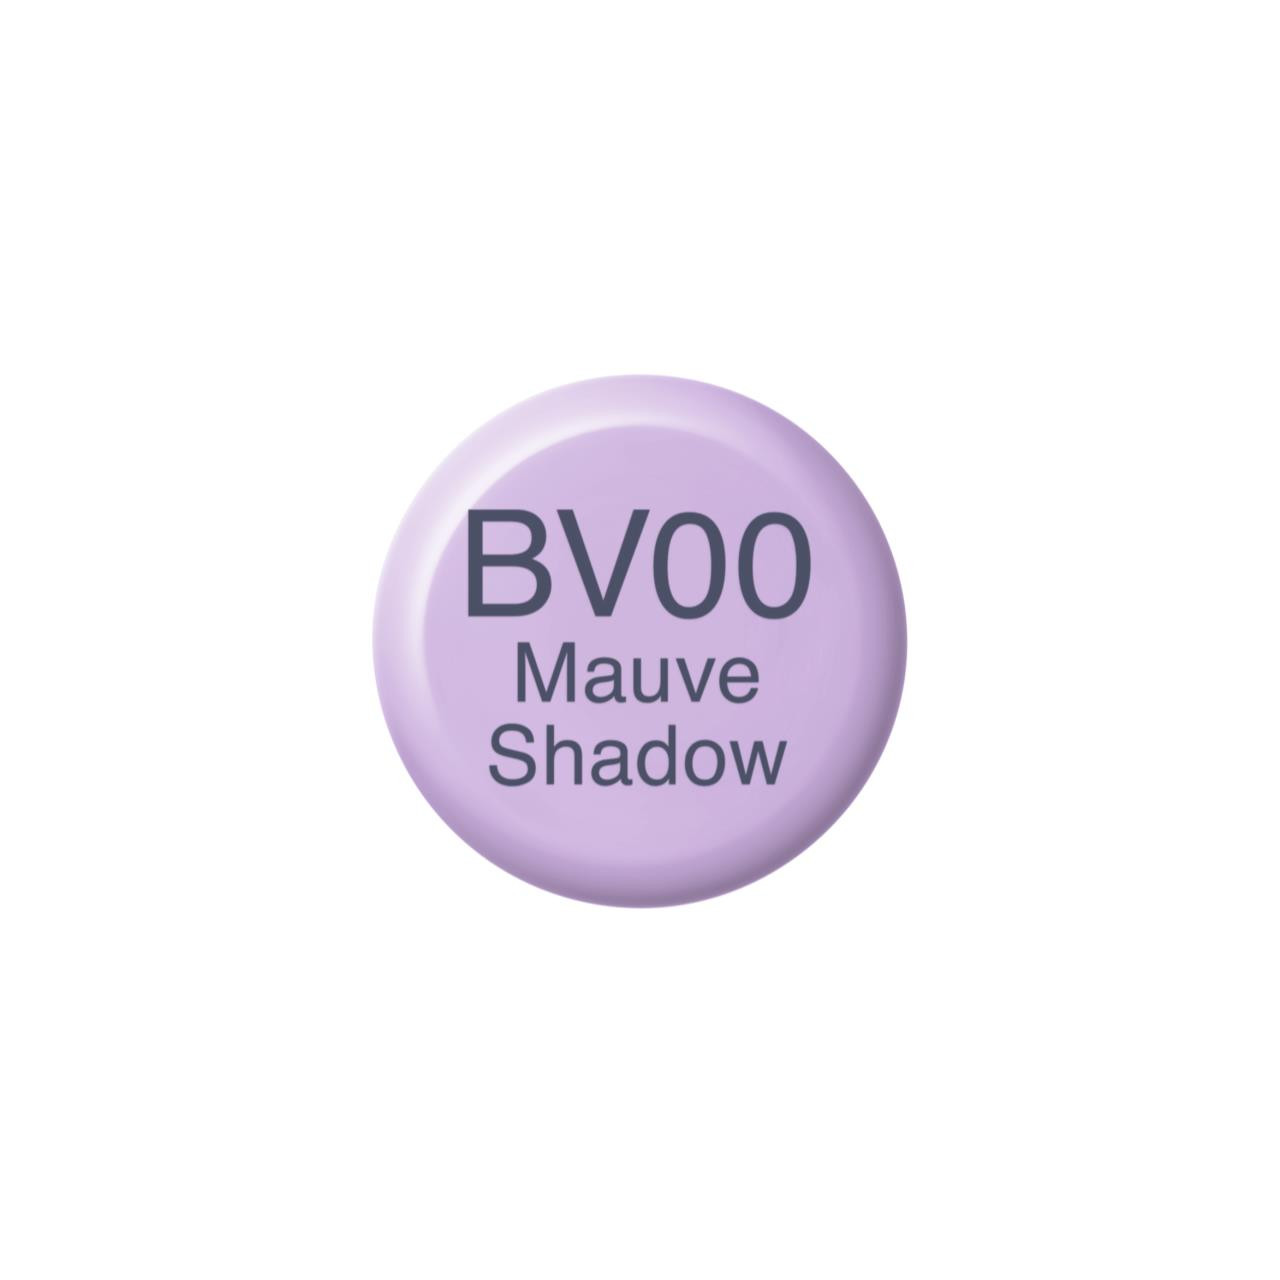 BV00 Mauve Shadow, Copic Ink - 4511338056448